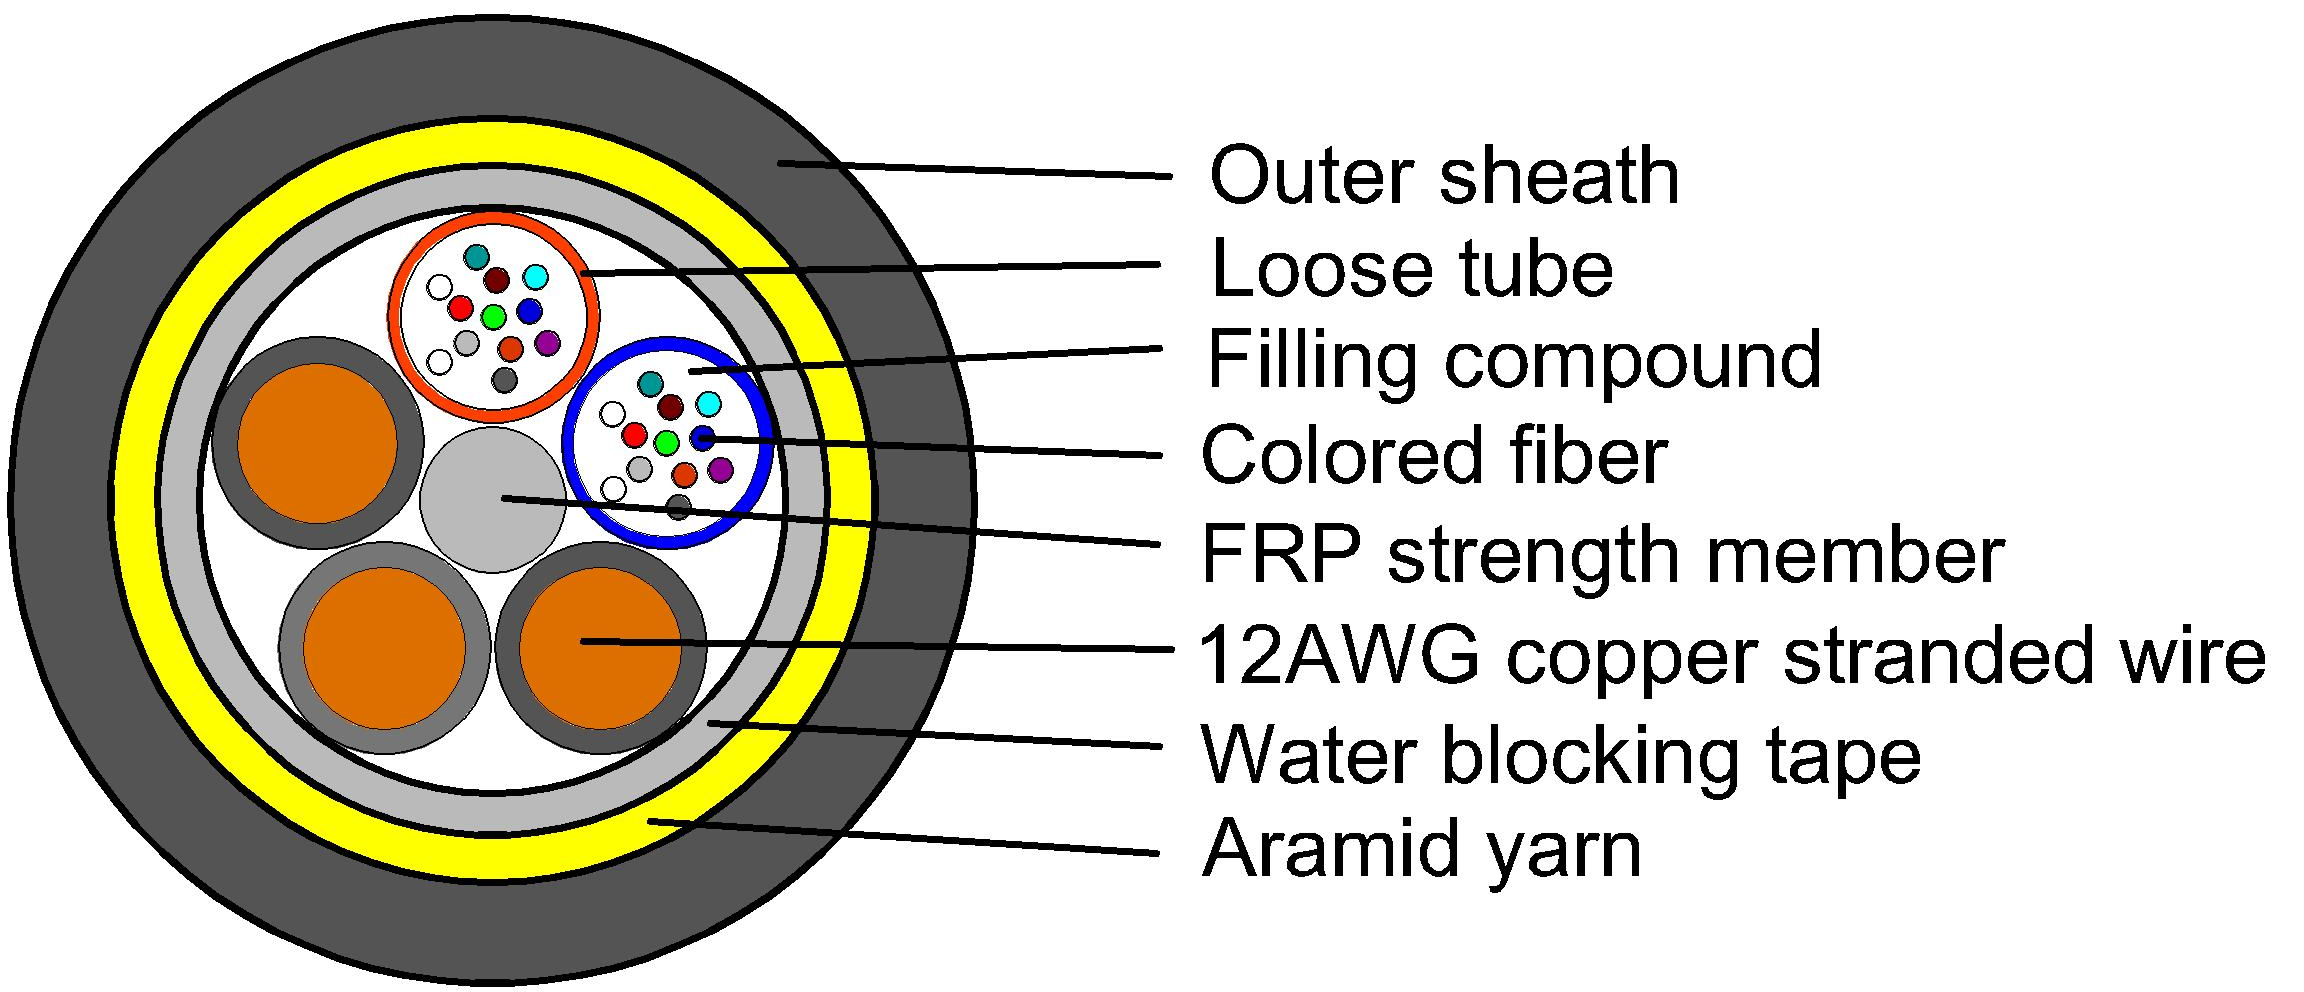 hybrid loose tube fiber cable